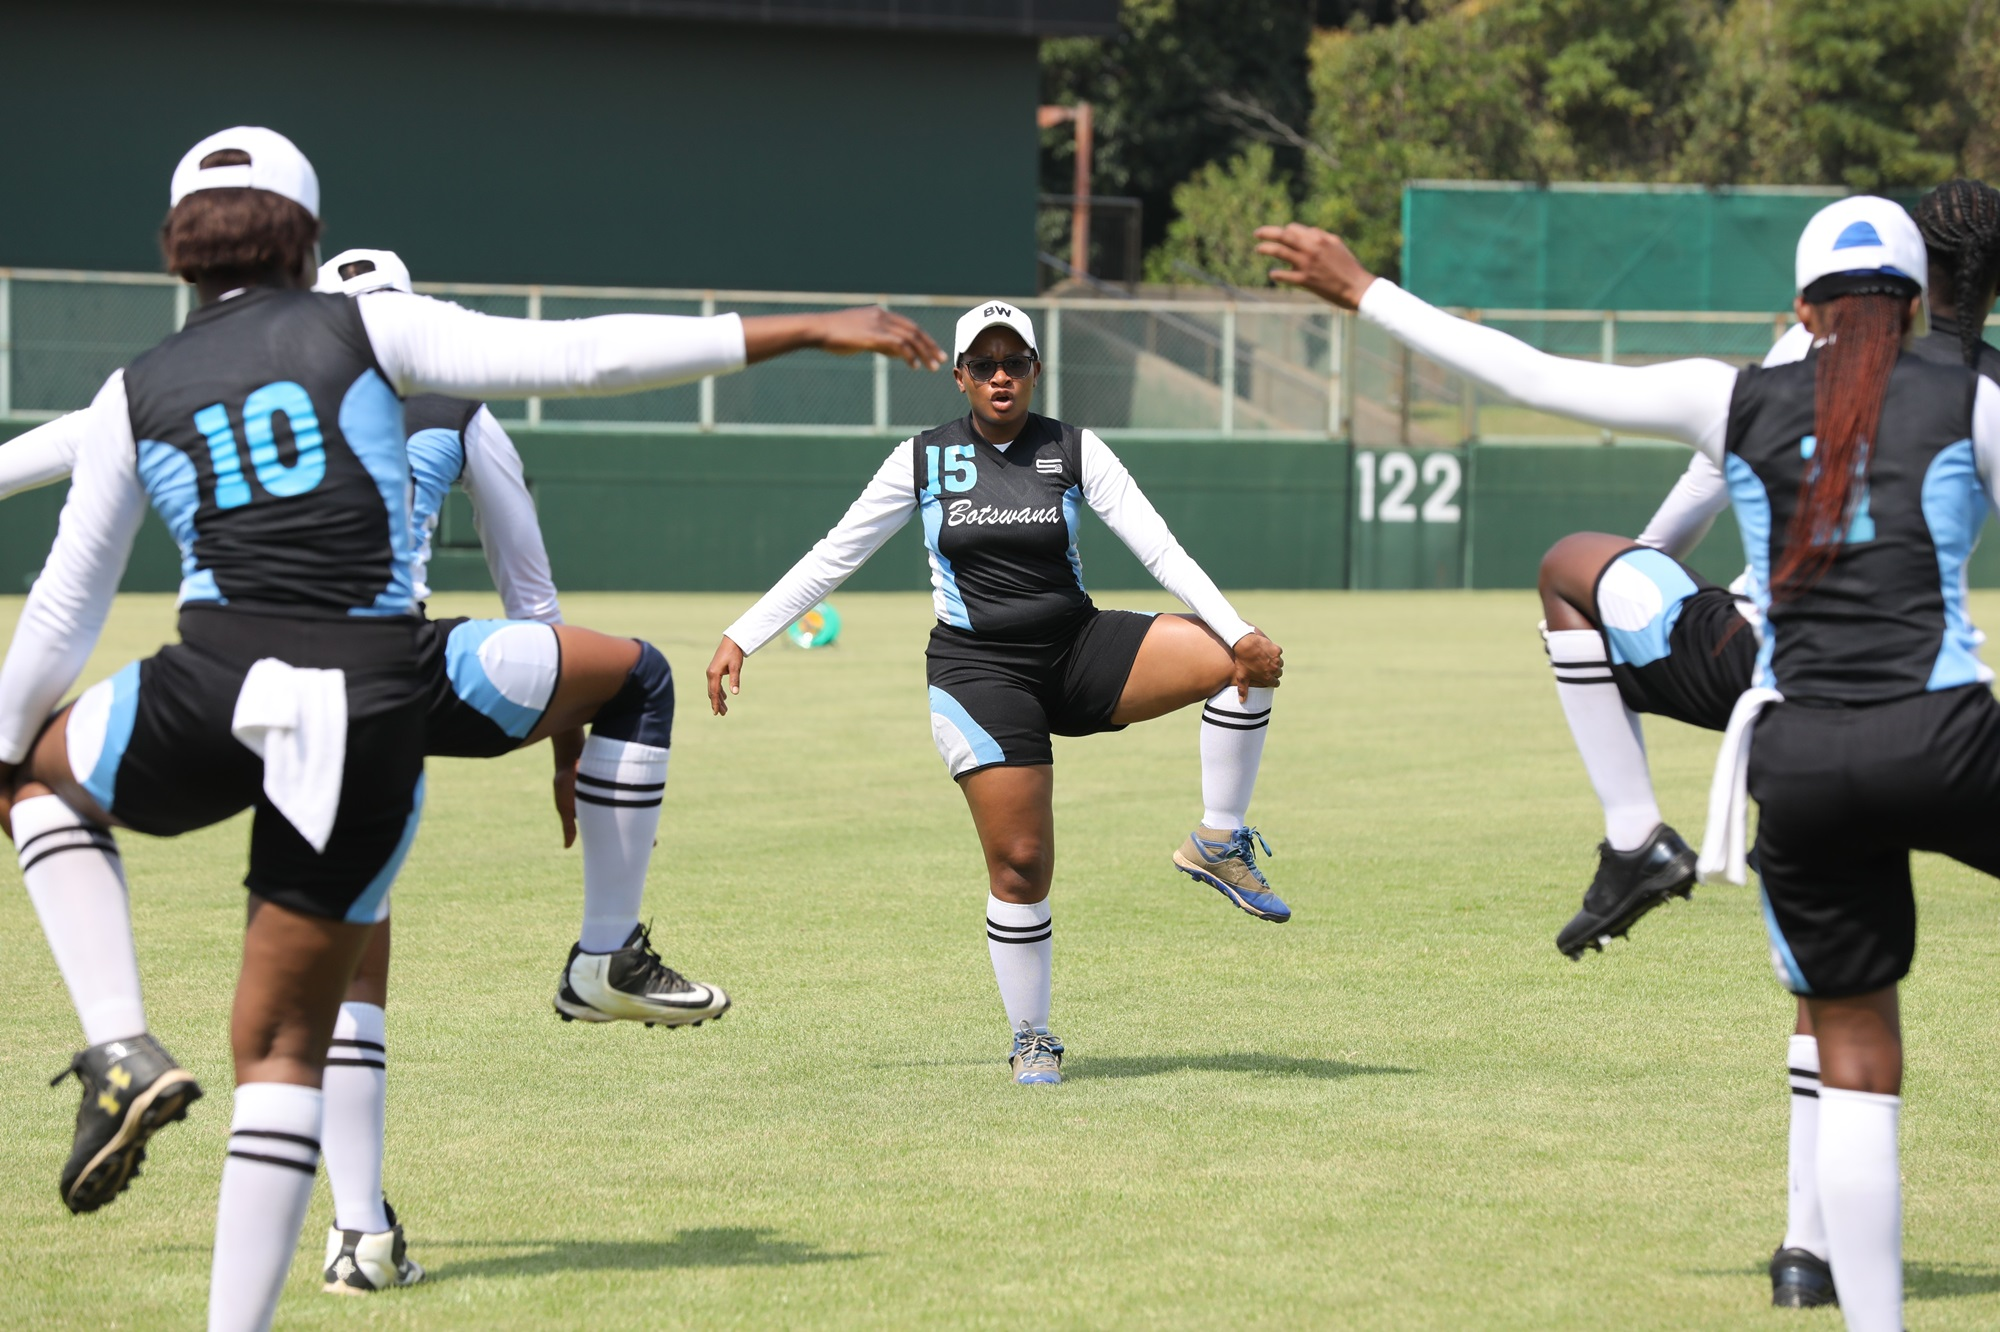 Botswana warming up: it really looks like a dance